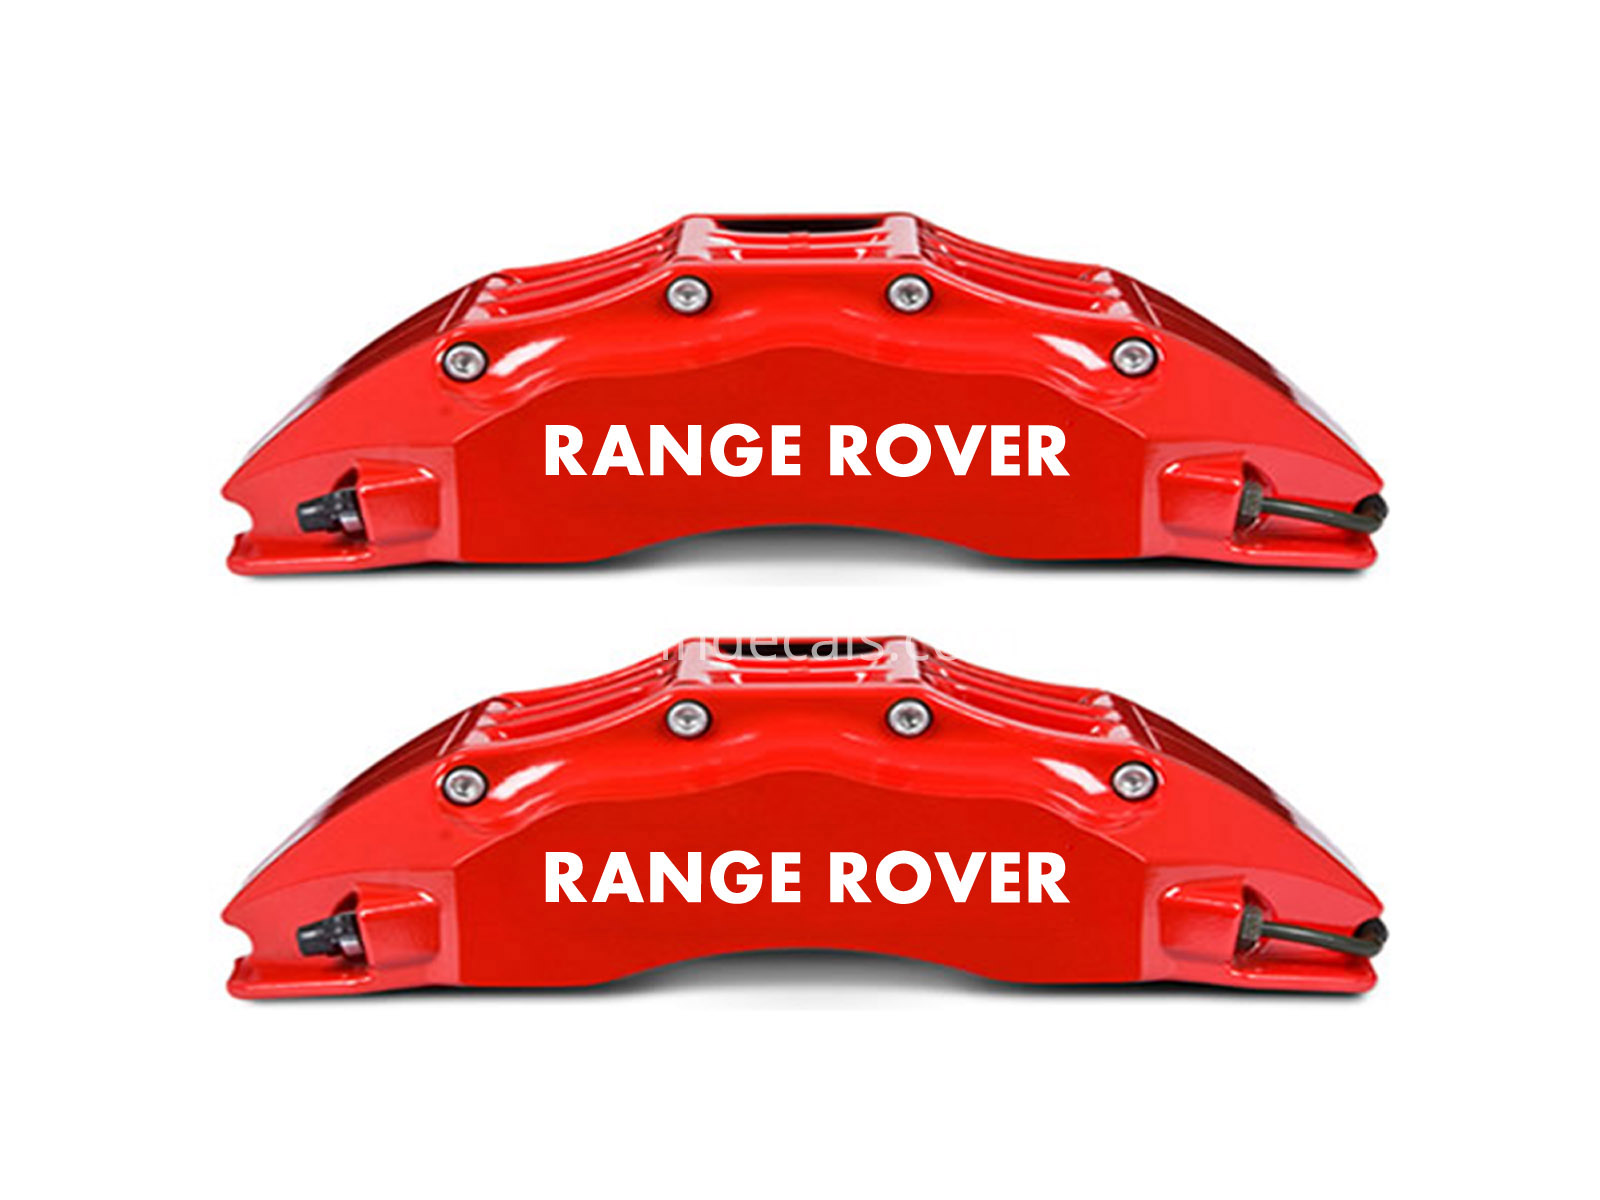 6 x Range Rover Stickers for Brakes - White